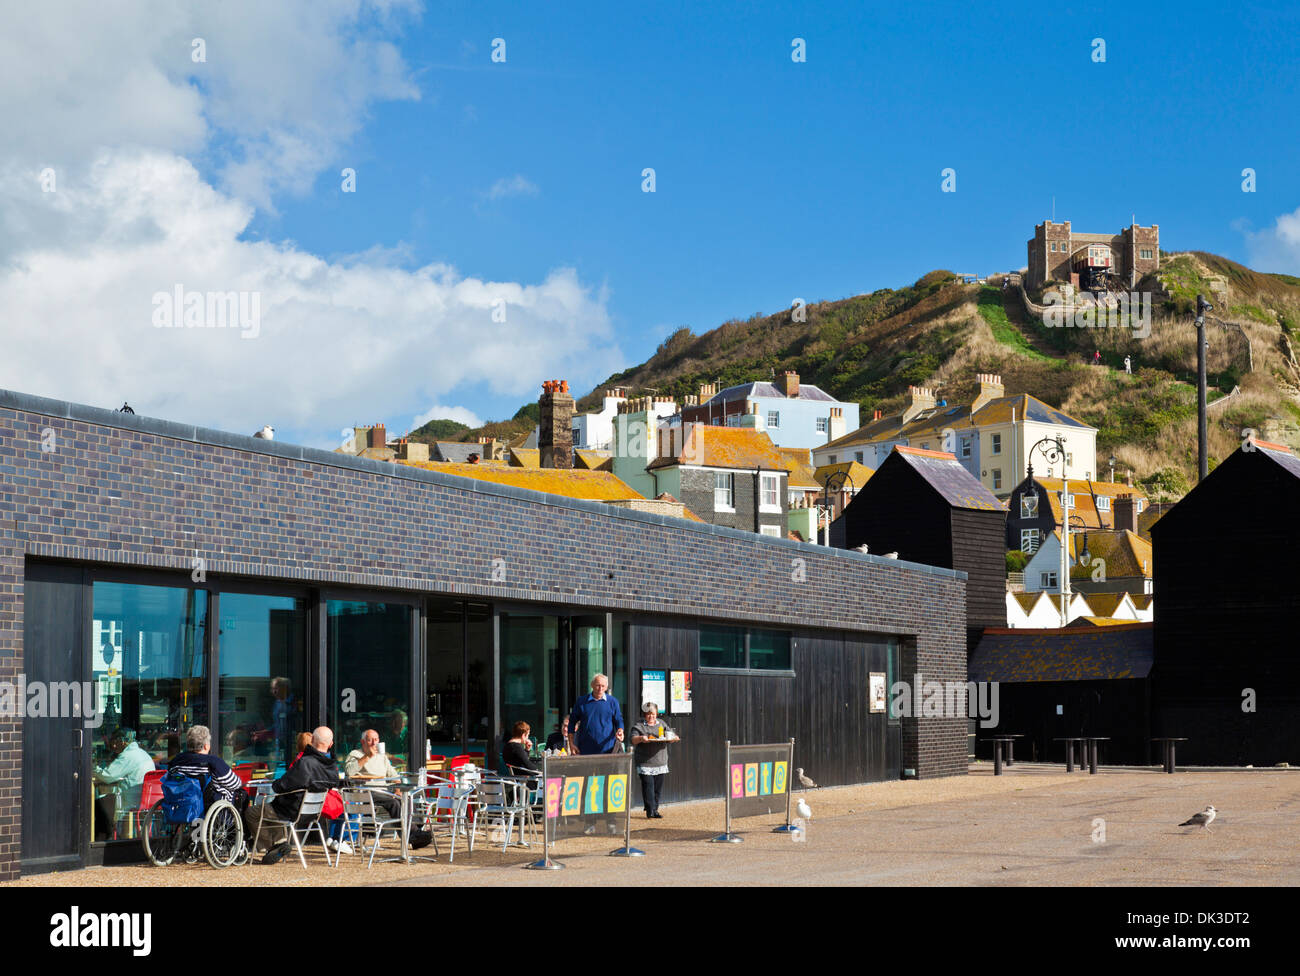 eat @ The Stade cafe Hastings seafront East Sussex England UK GB EU Europe - Stock Image